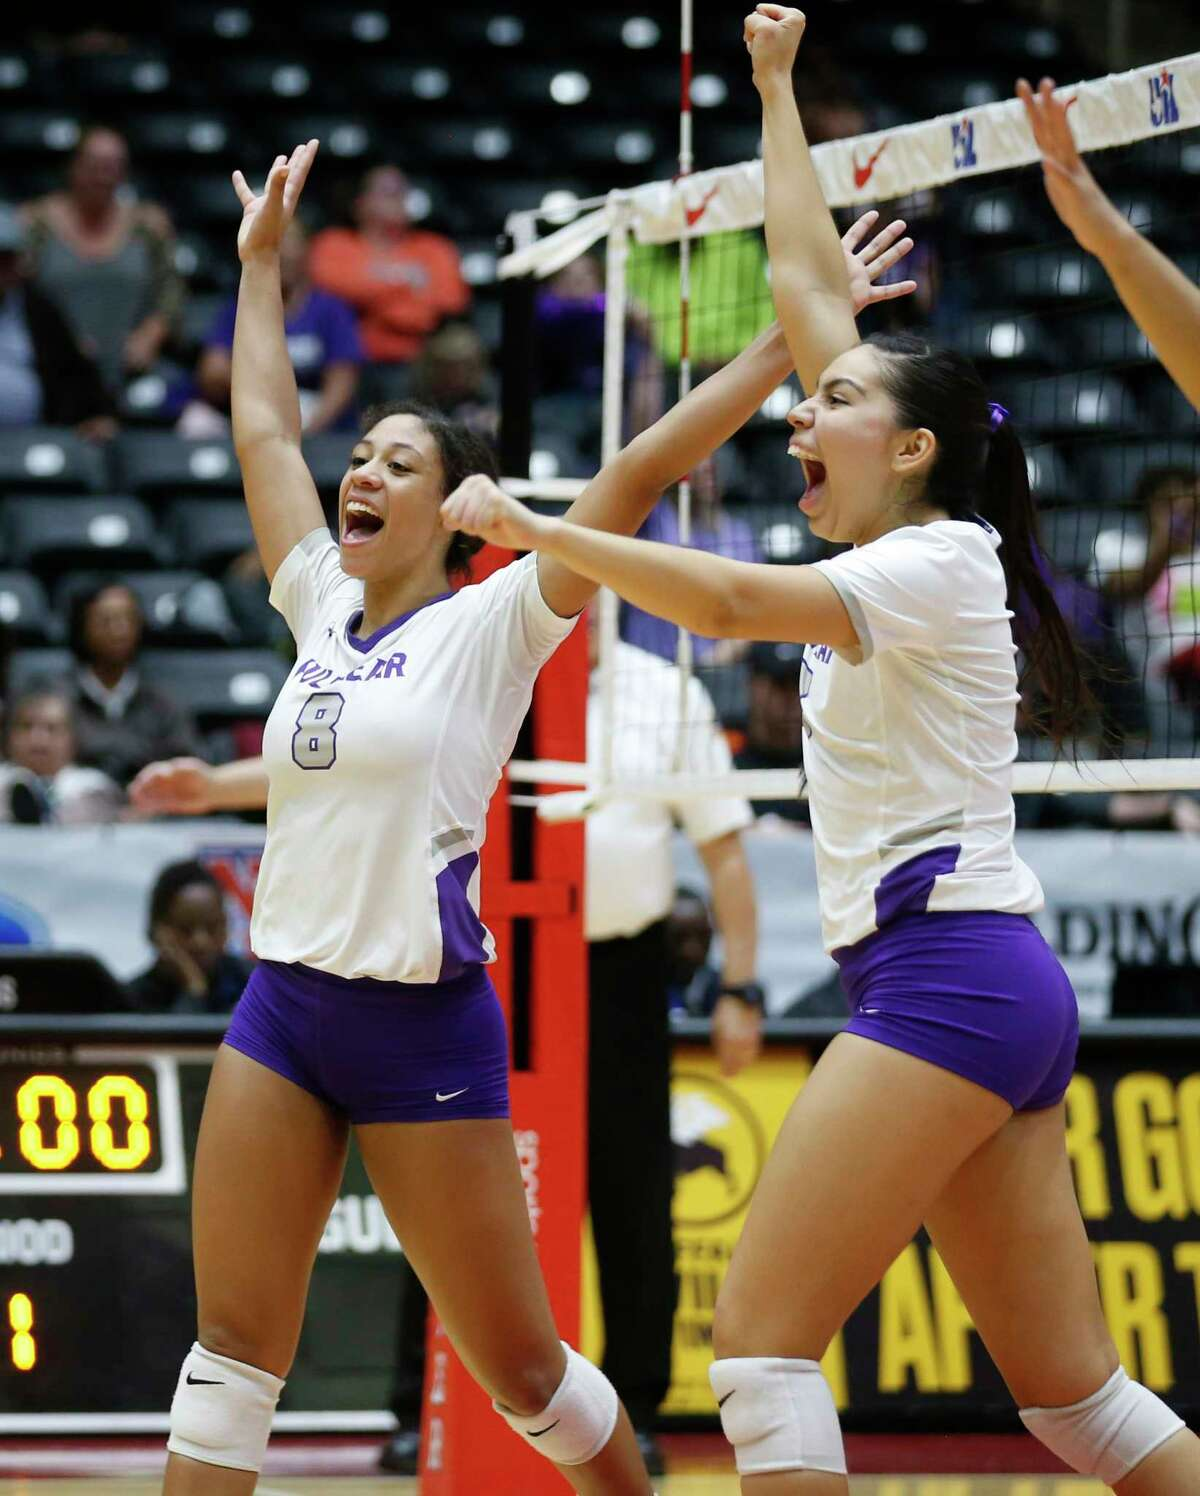 Lamar Fulshear?•s Alexis Dacosta (8) and Jalile Rodriguez (17) celebrate after gaining a point in the third and final set of a Class 4A volleyball state semifinal match against Kennedale at the Curtis Culwell Center in Garland, on Thursday, November 21, 2019. Fulshear won three straight sets 25-14, 25-11 and 25-20 to advance to the state final.